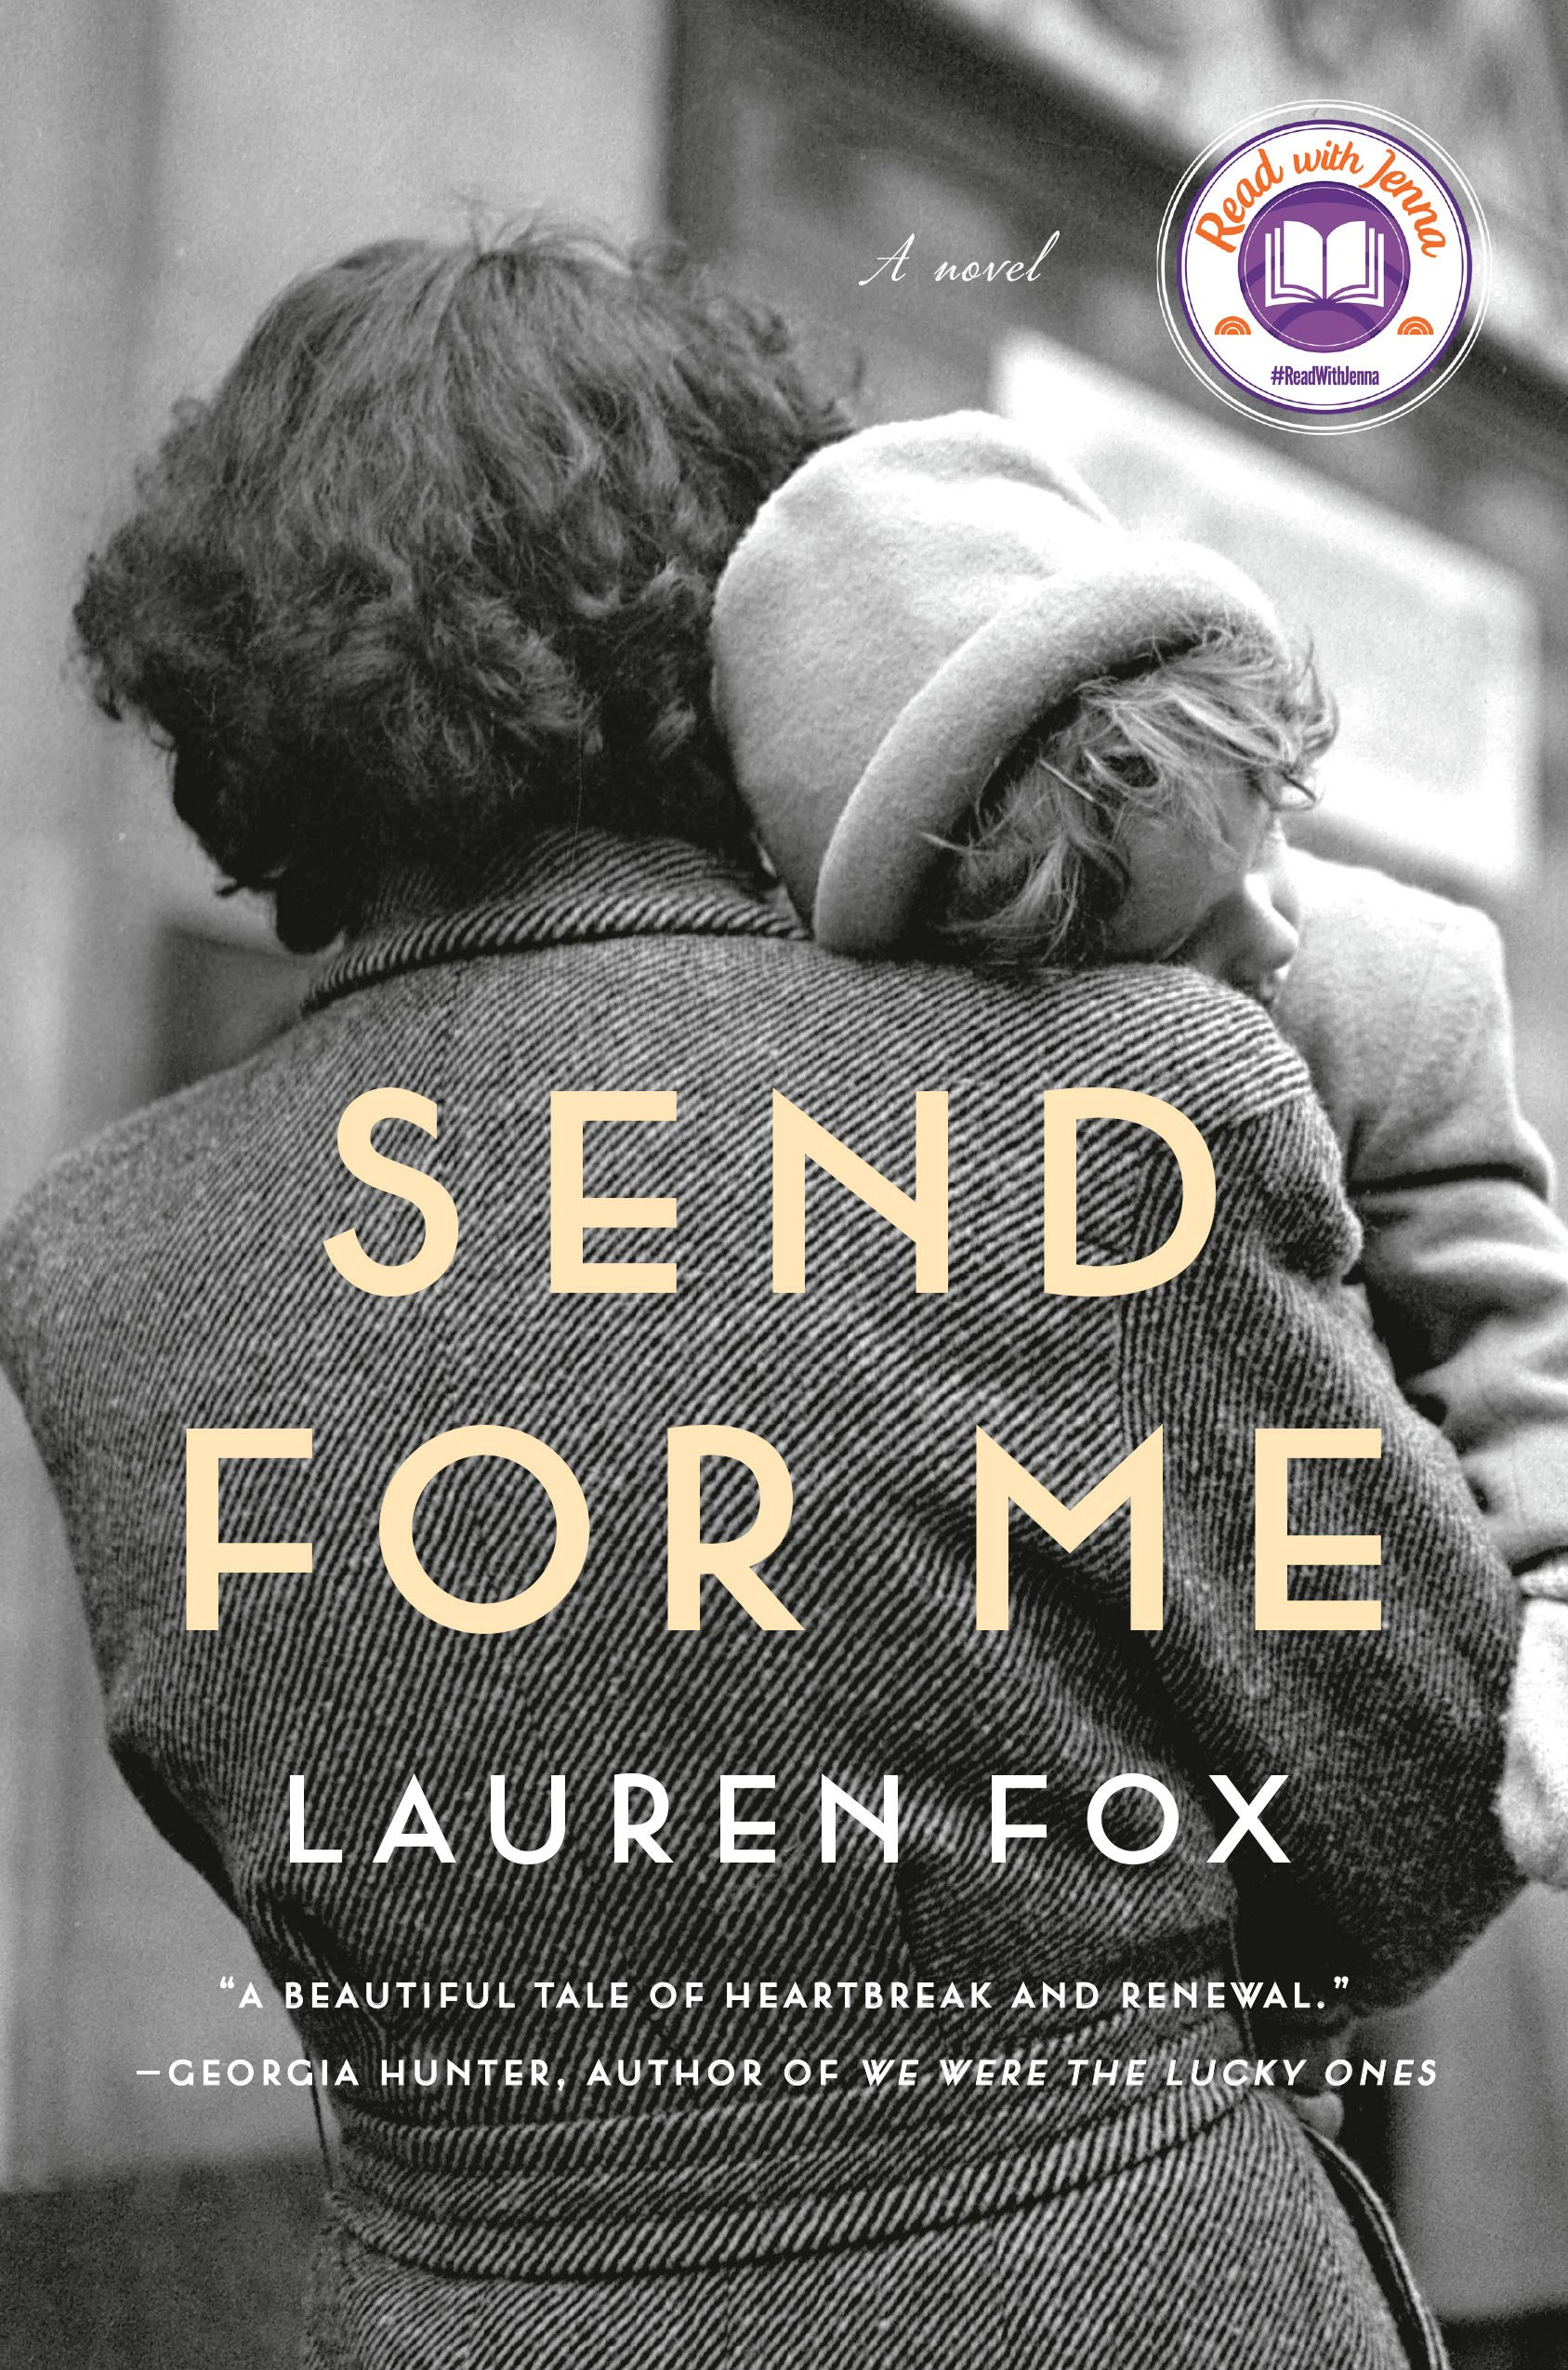 Send for Me: A novel WeeklyReviewer